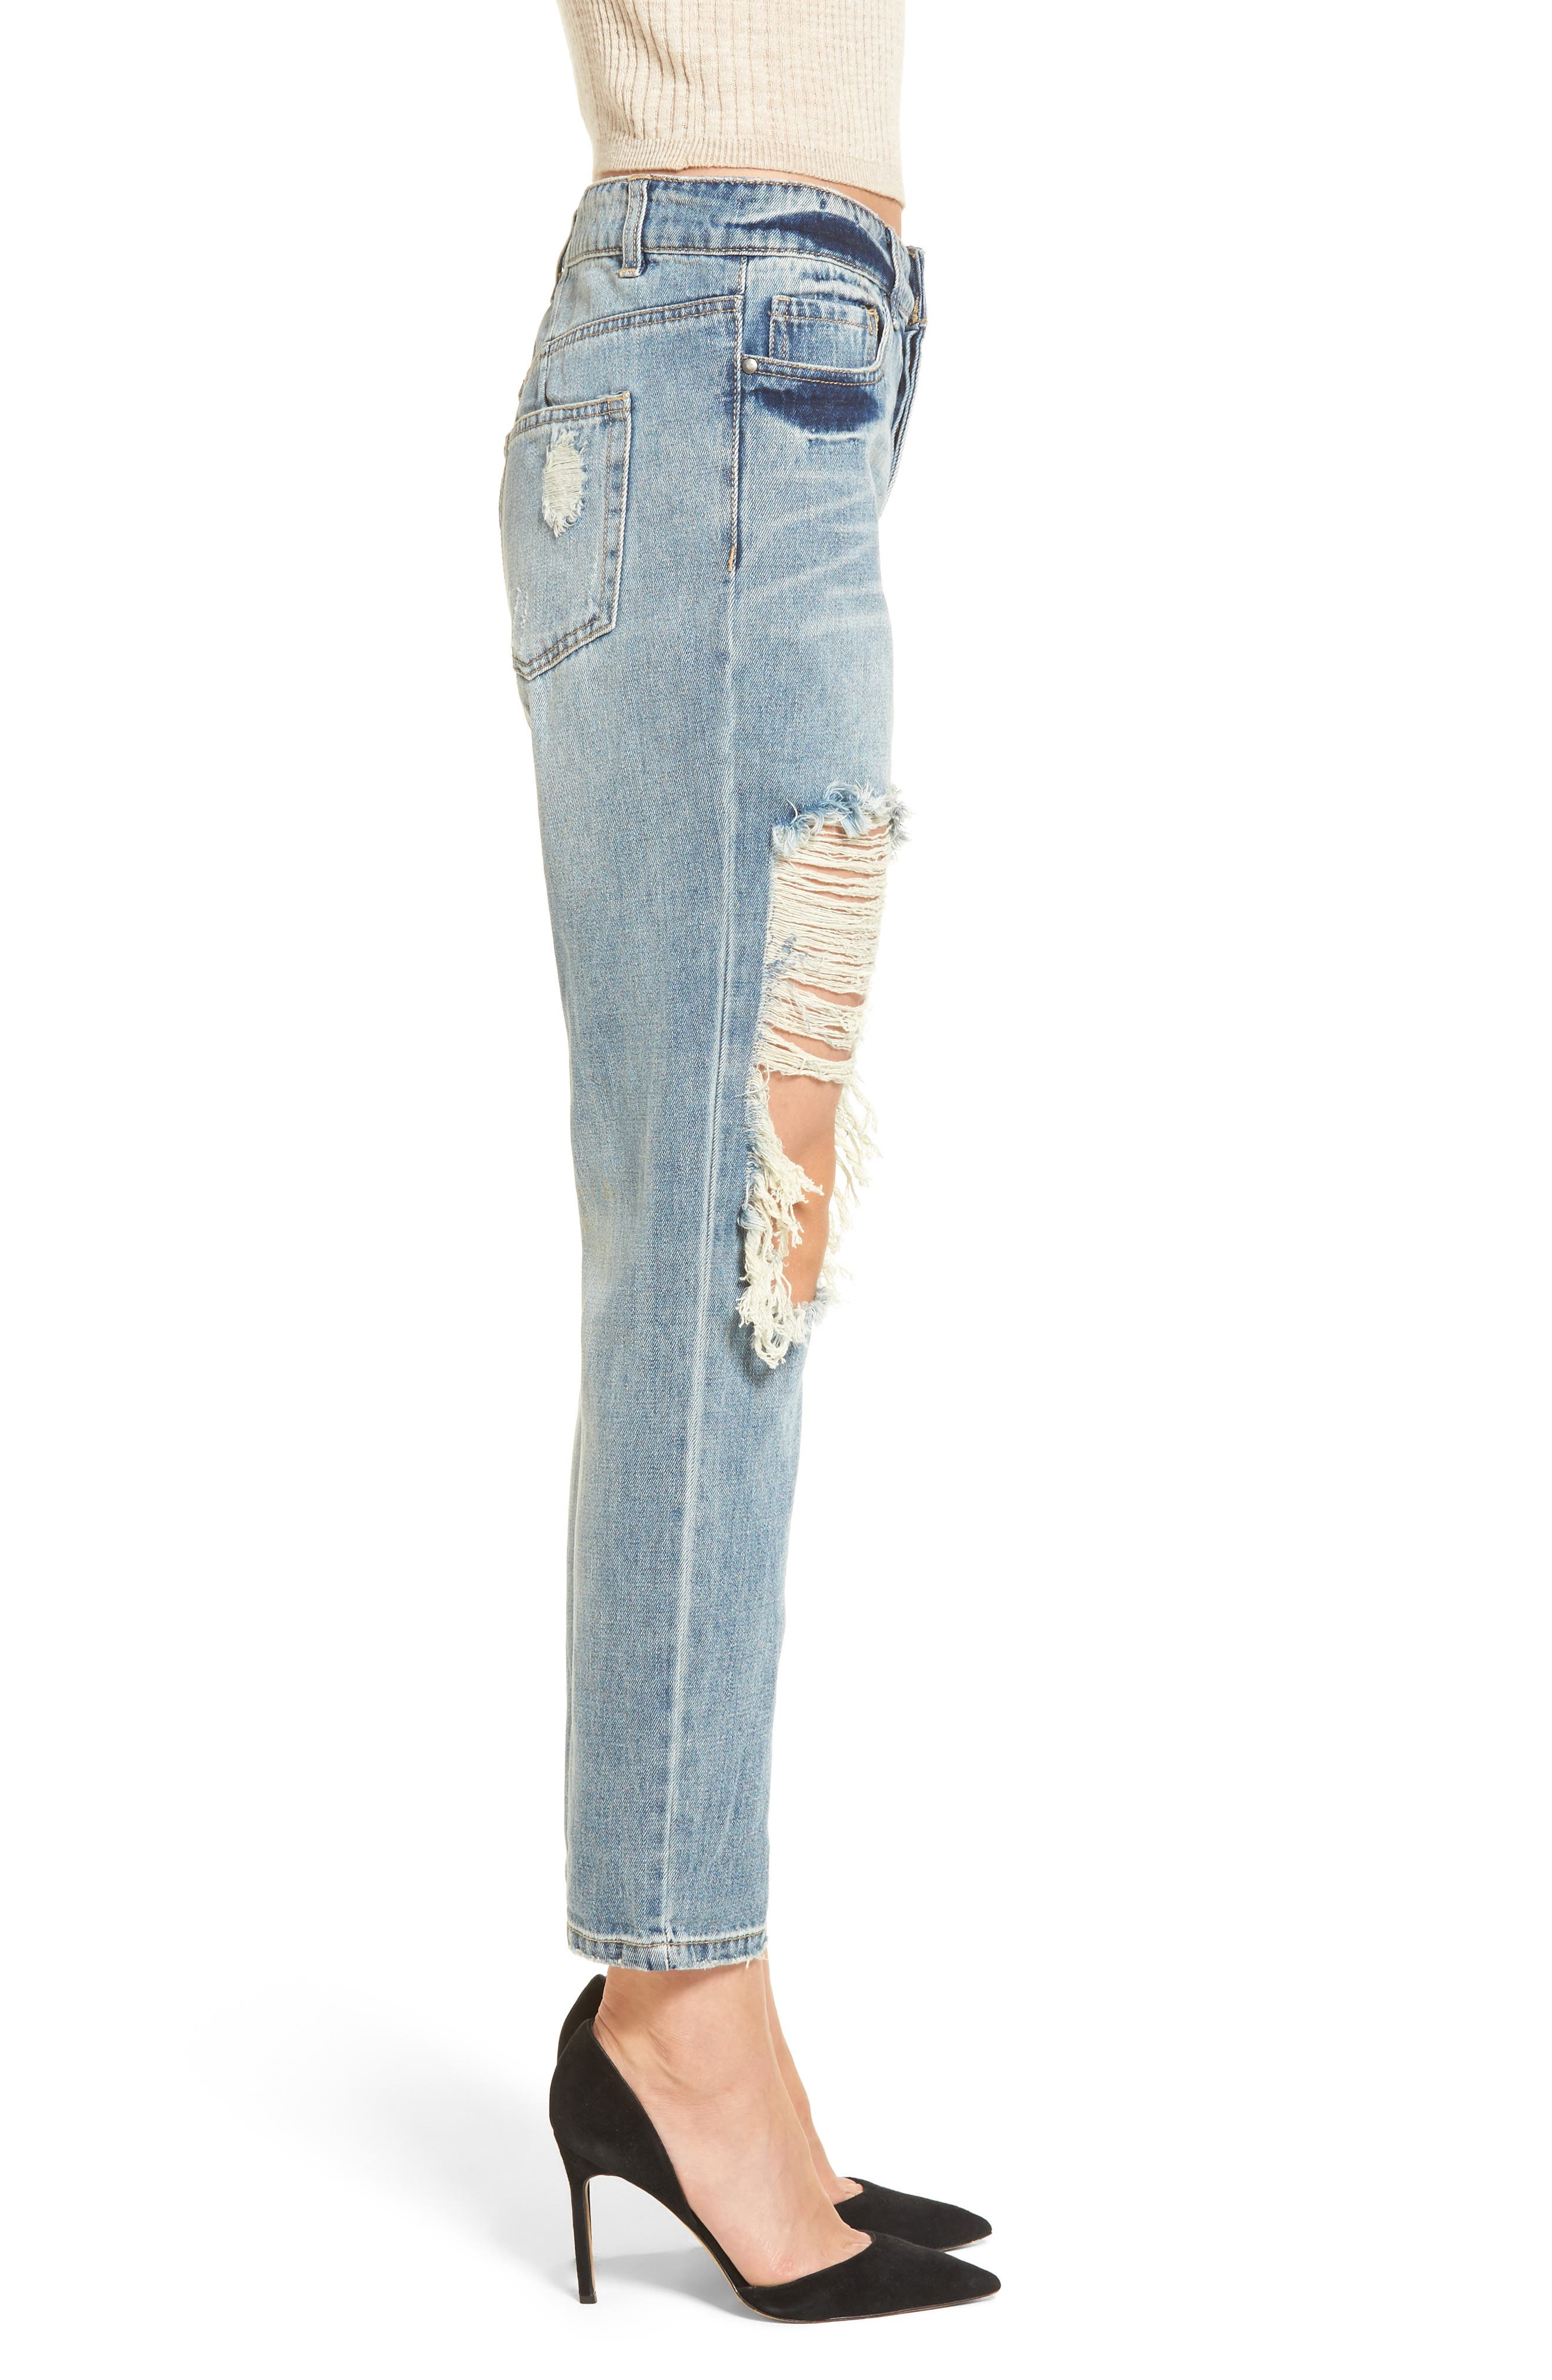 Cyrus High Waist Ankle Jeans,                             Alternate thumbnail 3, color,                             SINNER WASH